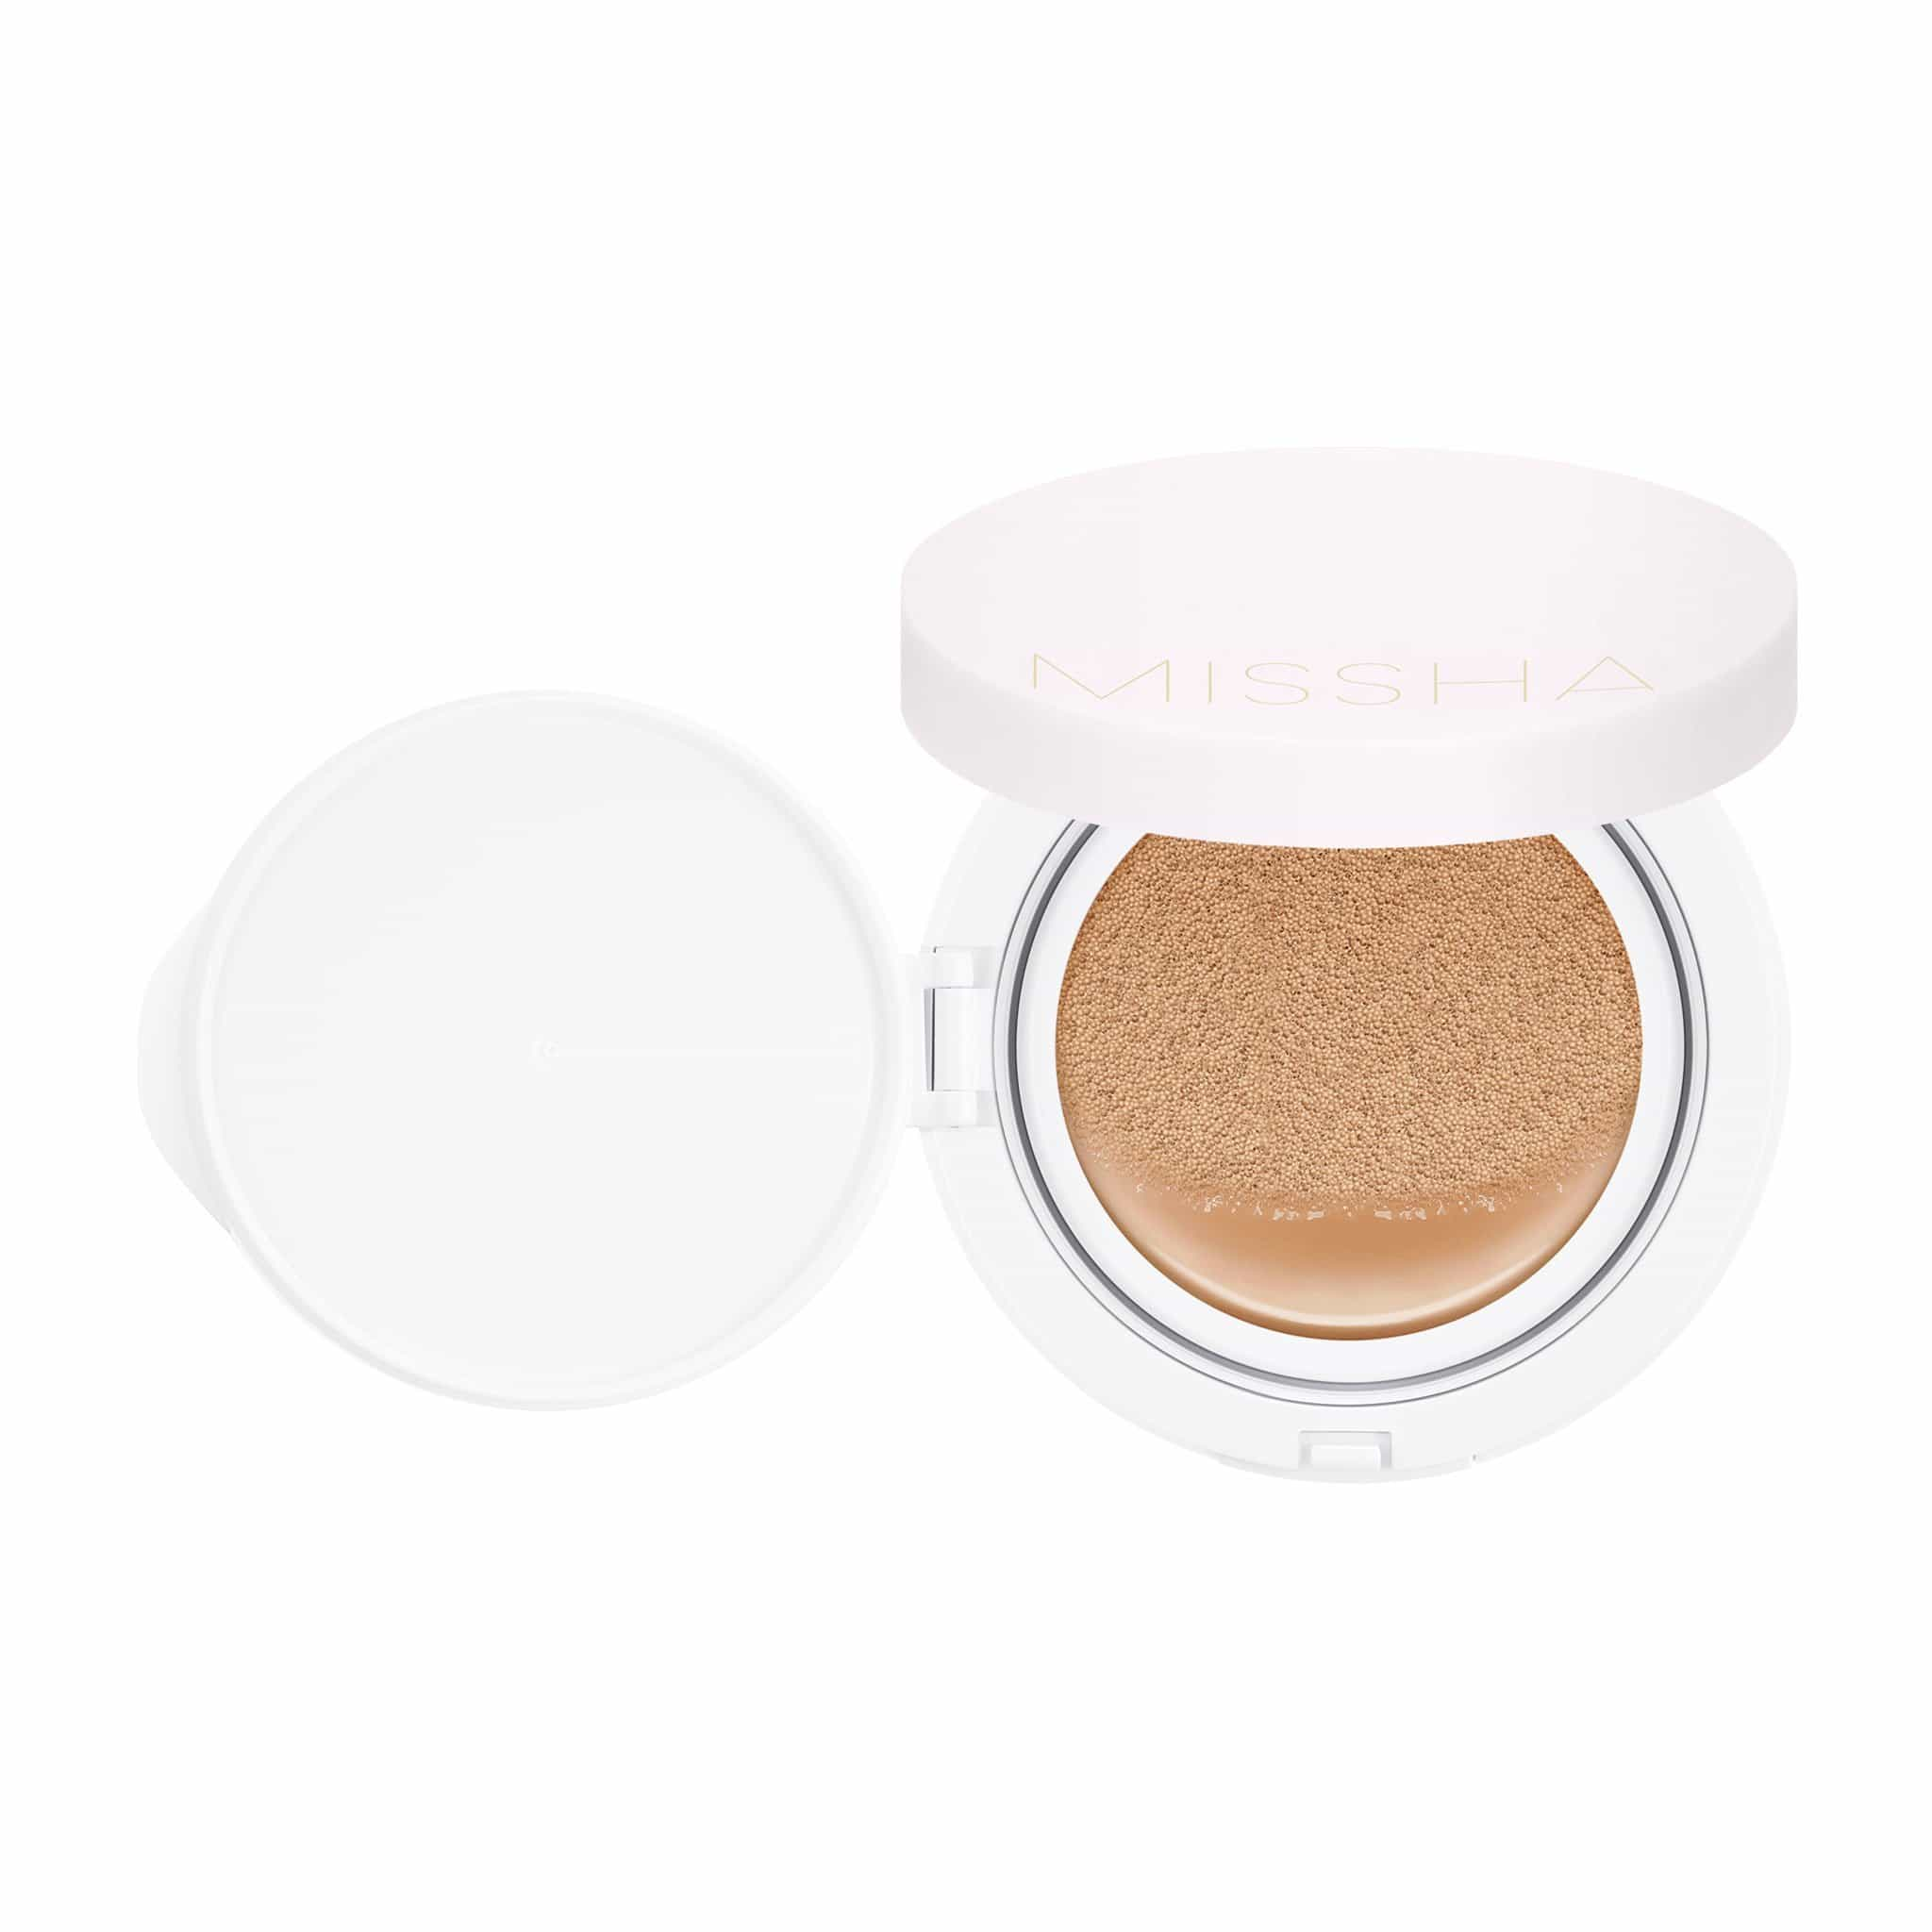 MAGIC CUSHION COVER LASTING SPF 50+/PA+++ - MISSHA